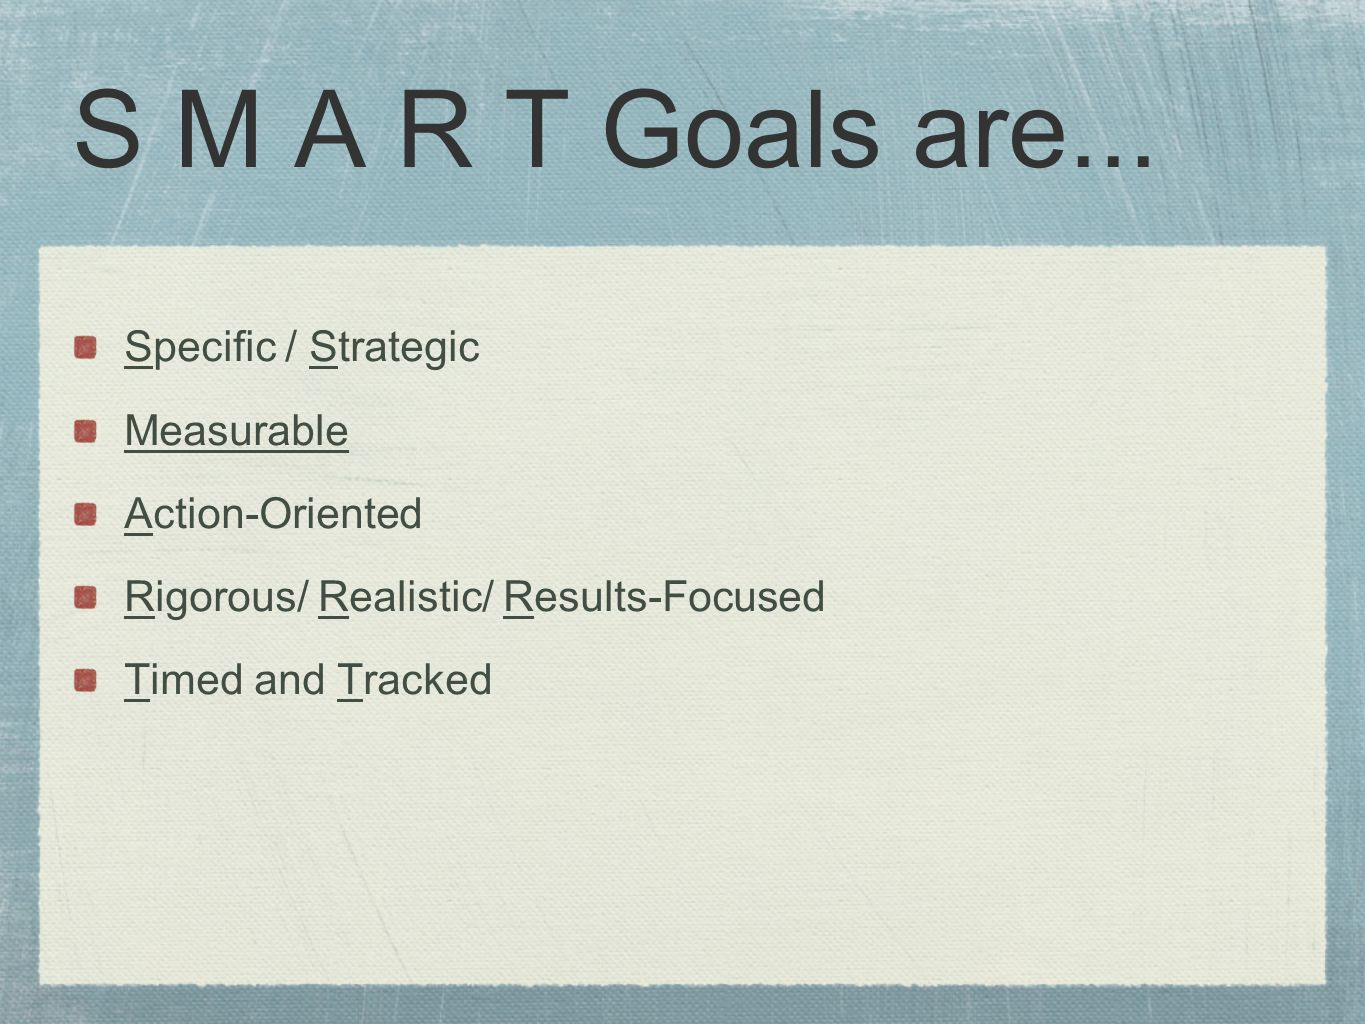 S M A R T Goals are...